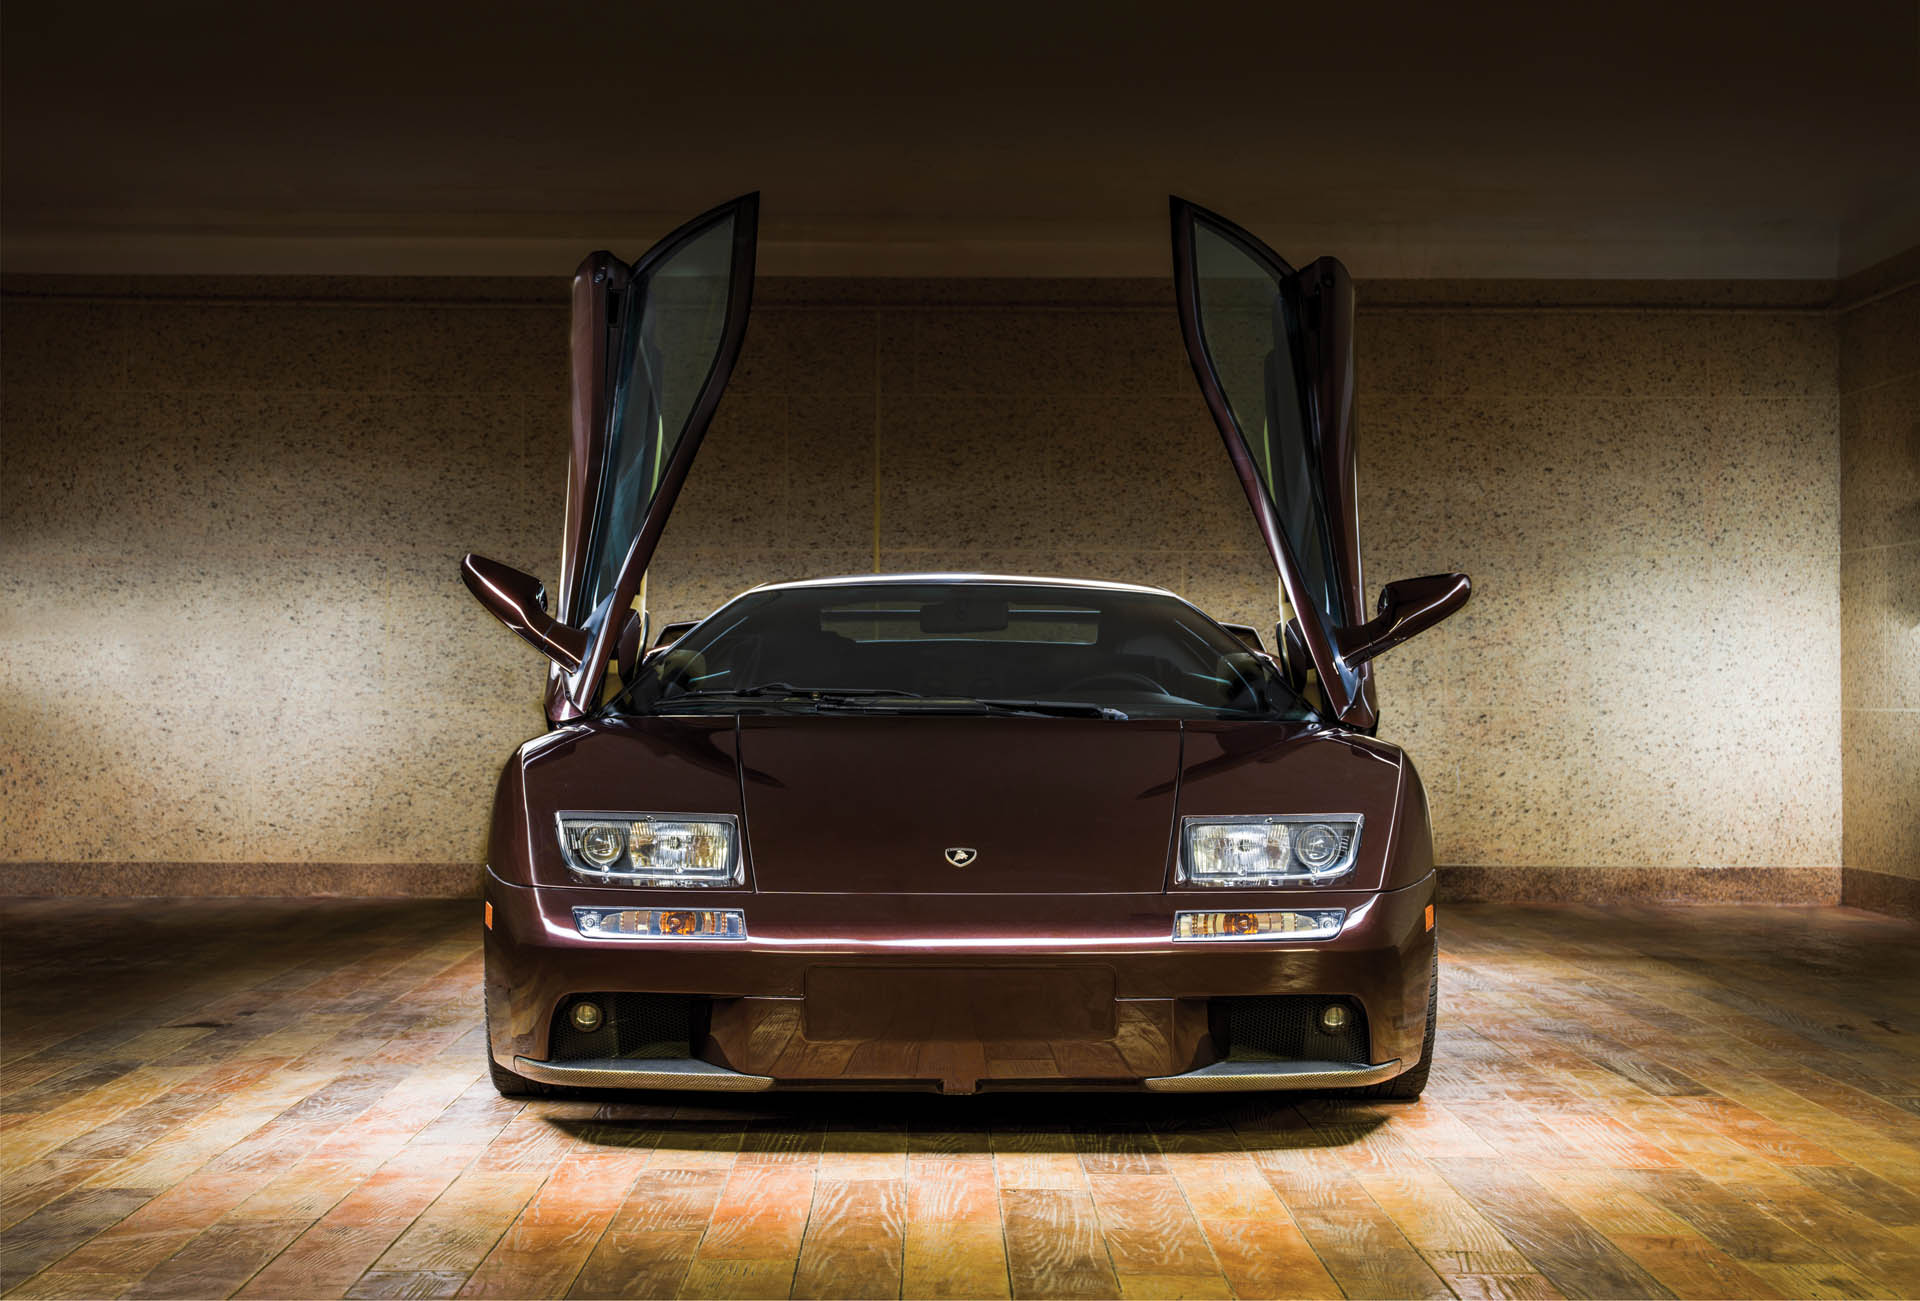 Lamborghini Diablo VT 6.0 SE for sale (5)